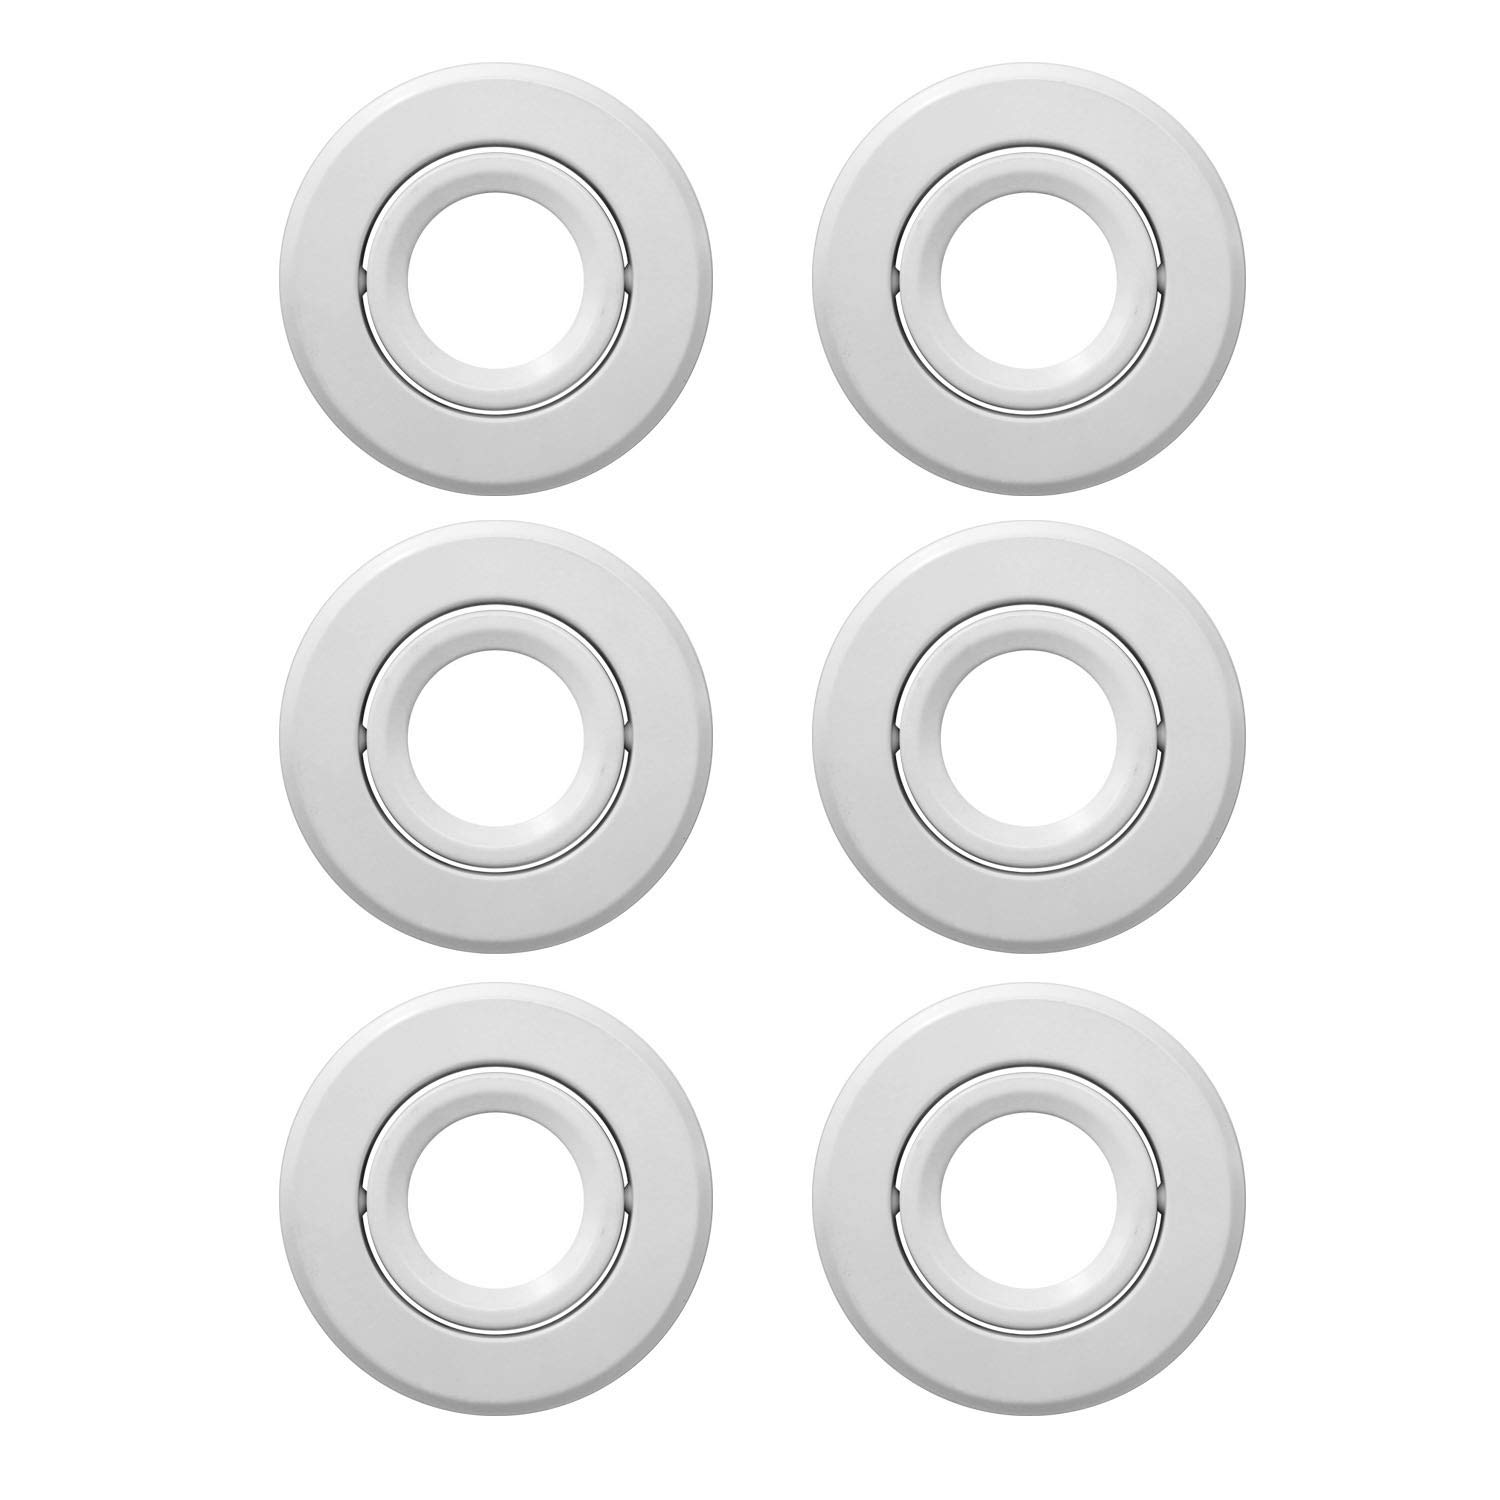 JULLISON 4 inch Recessed Can Light Trim, Adjustable 30°, Gimbal Ring, for 4 inch Line Voltage Recessed Housing Can in Use of PAR20/BR20, Fit Halo/Juno Remodel Recessed Housing, White - 6 Packs …